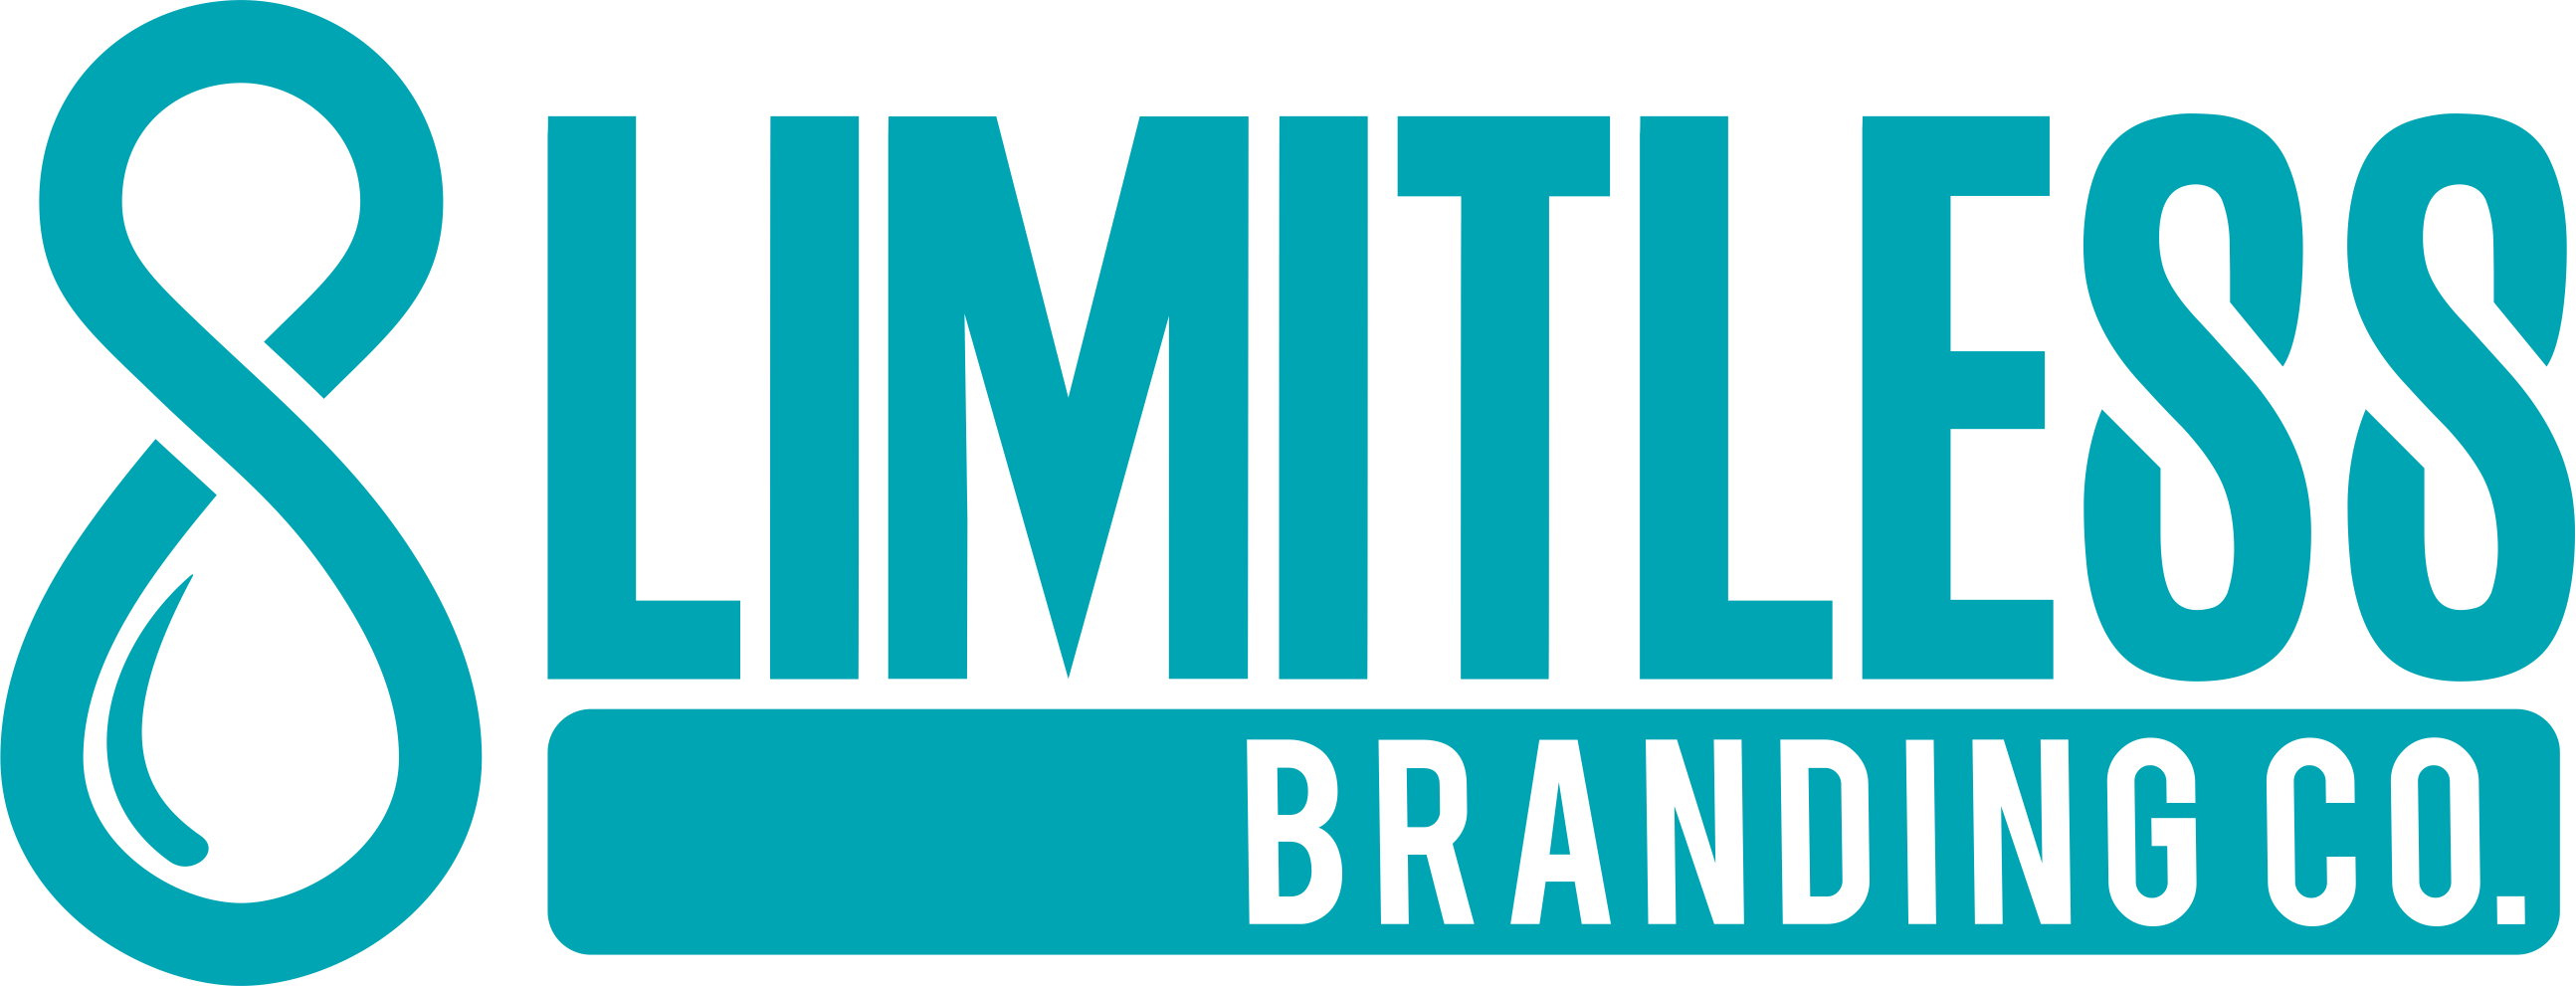 Limitless Branding Co.